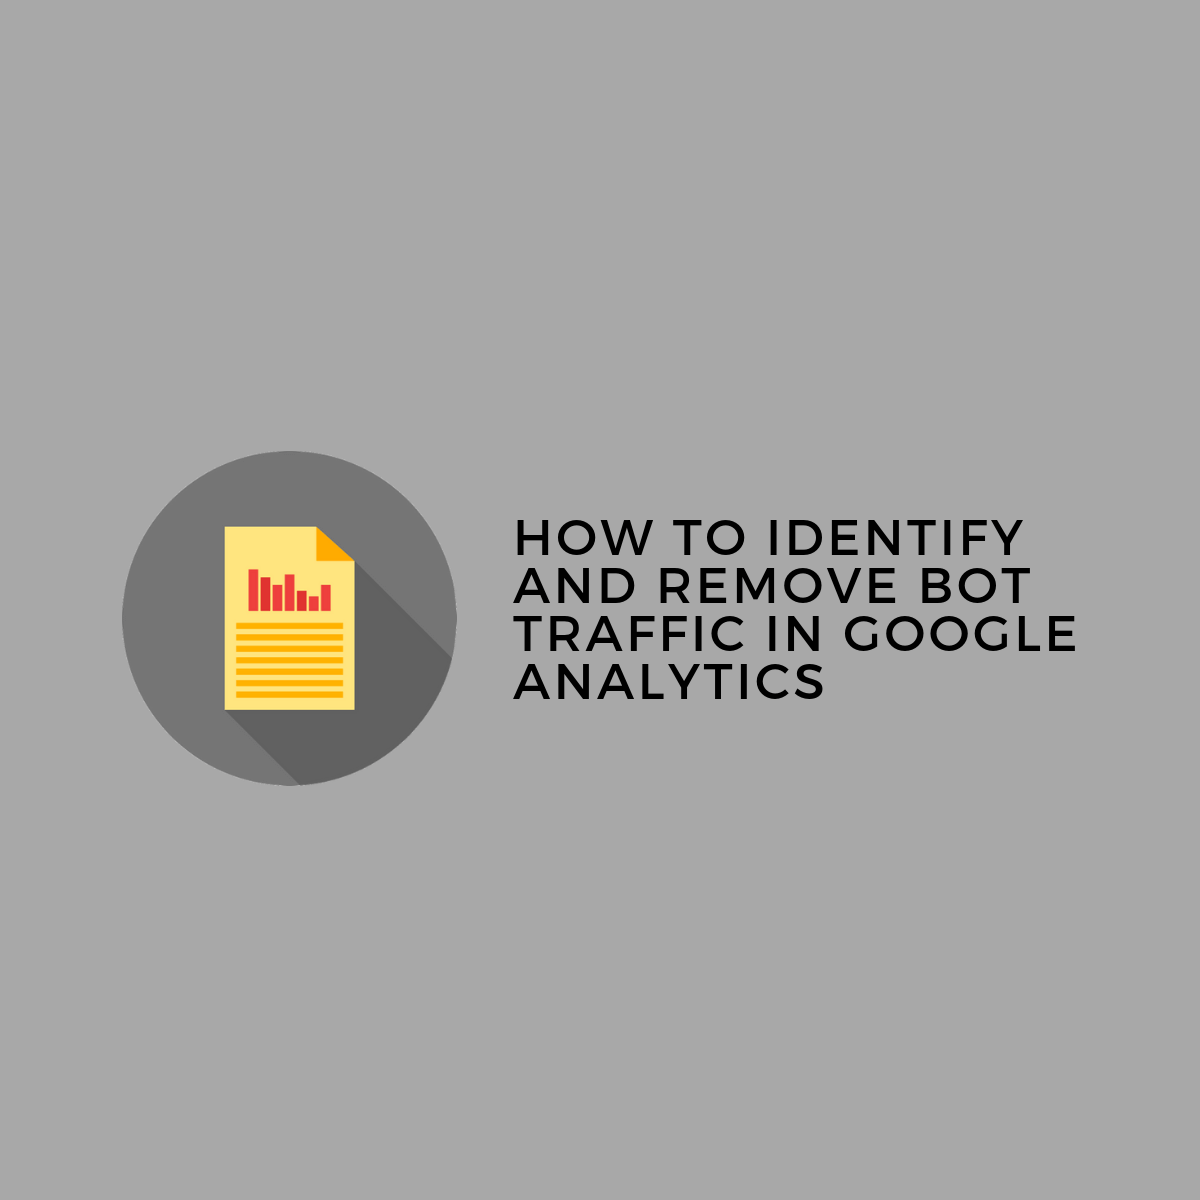 How to Identify and Remove Bot Traffic in Google Analytics